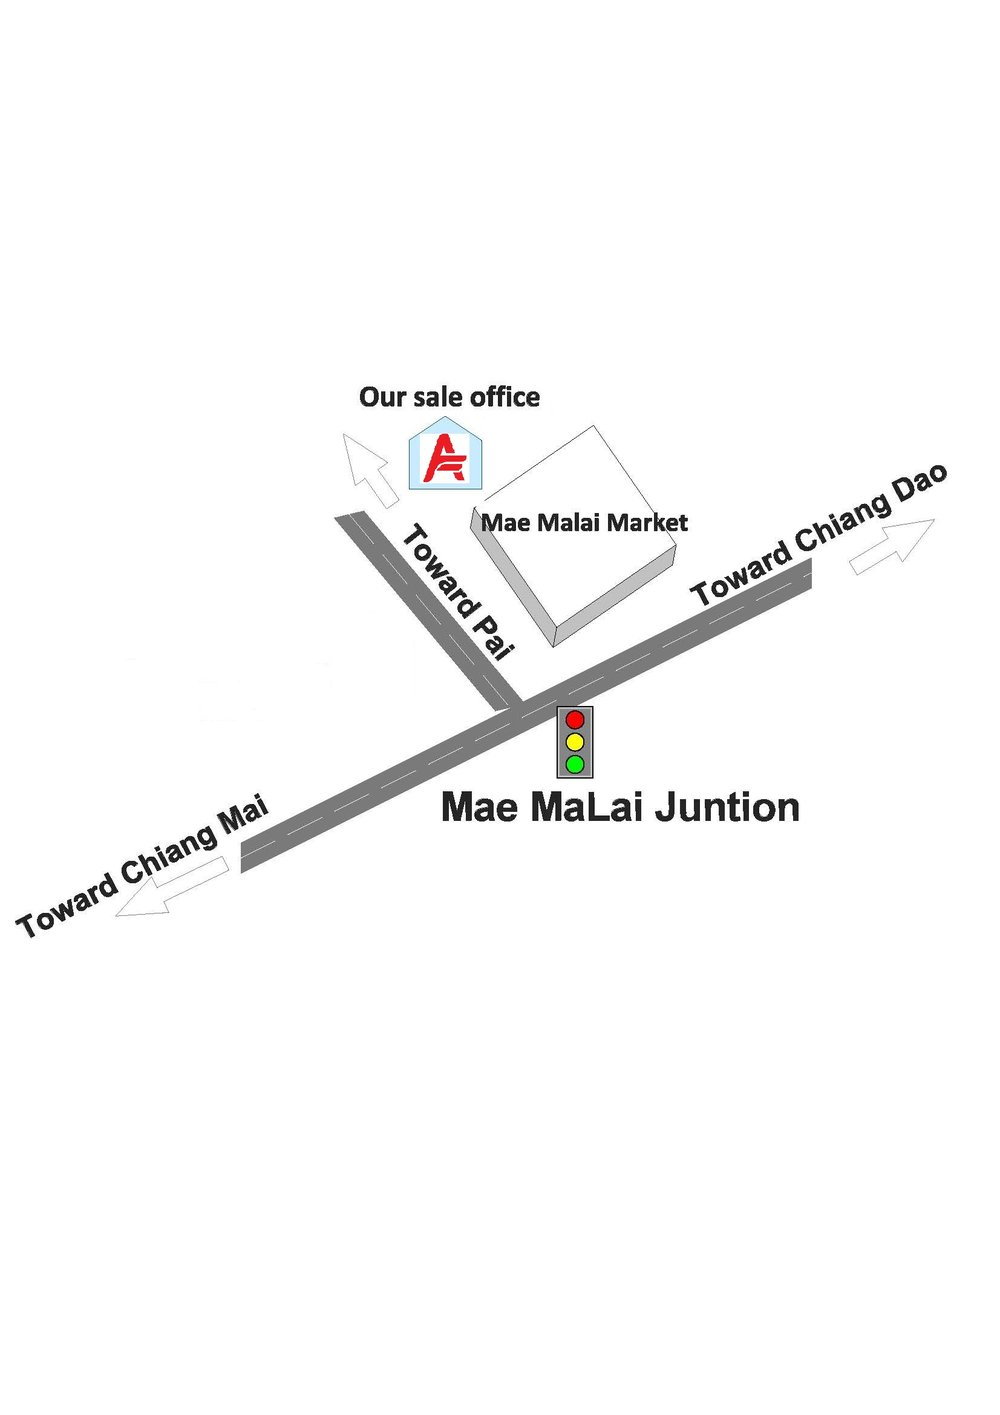 Mae Ma Lai bus stop search Google Map 19.094183, 98.935065